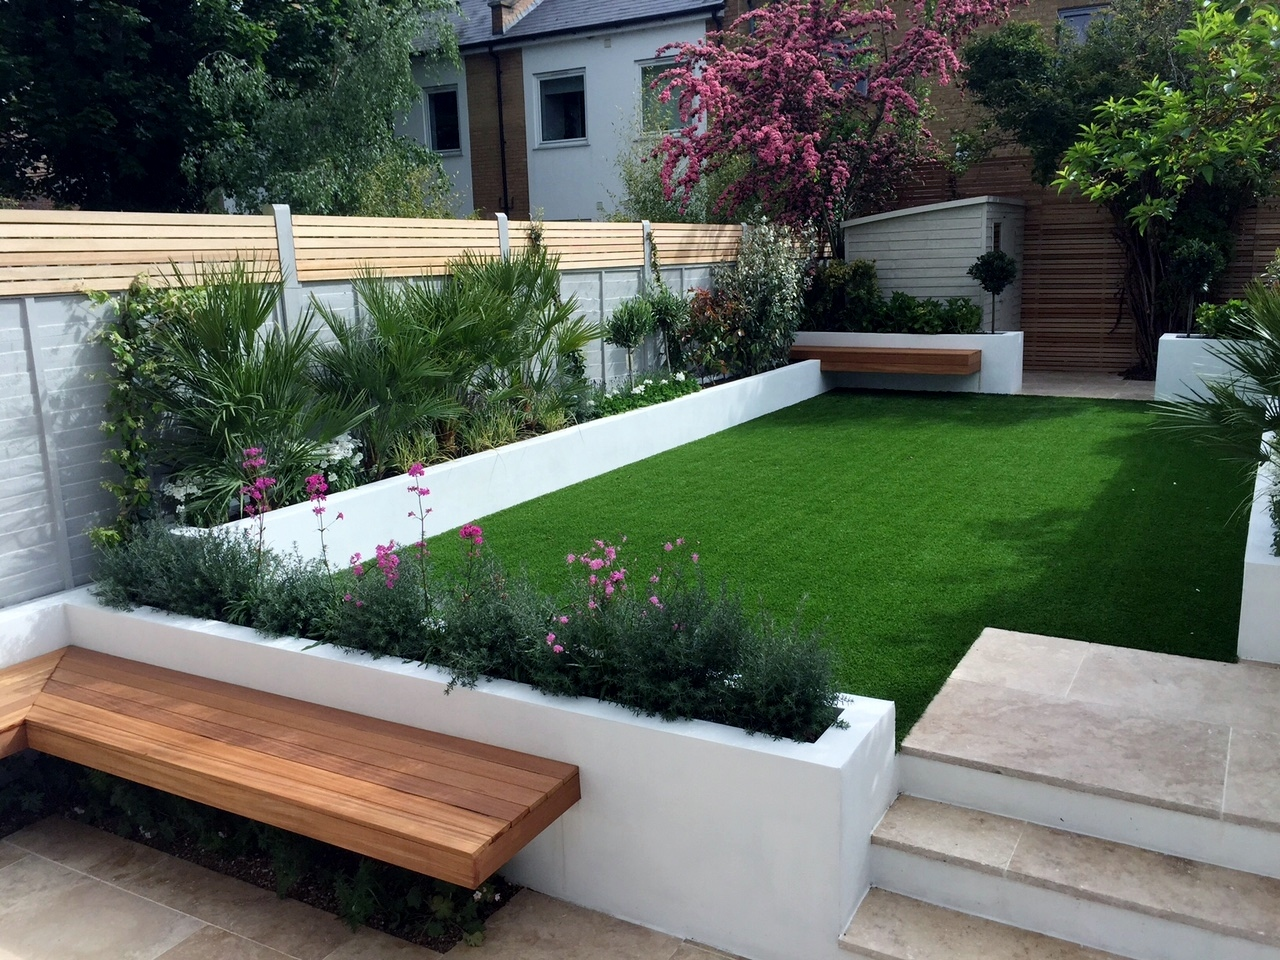 Modern garden design ideas fulham chelsea battersea for Home garden design ideas